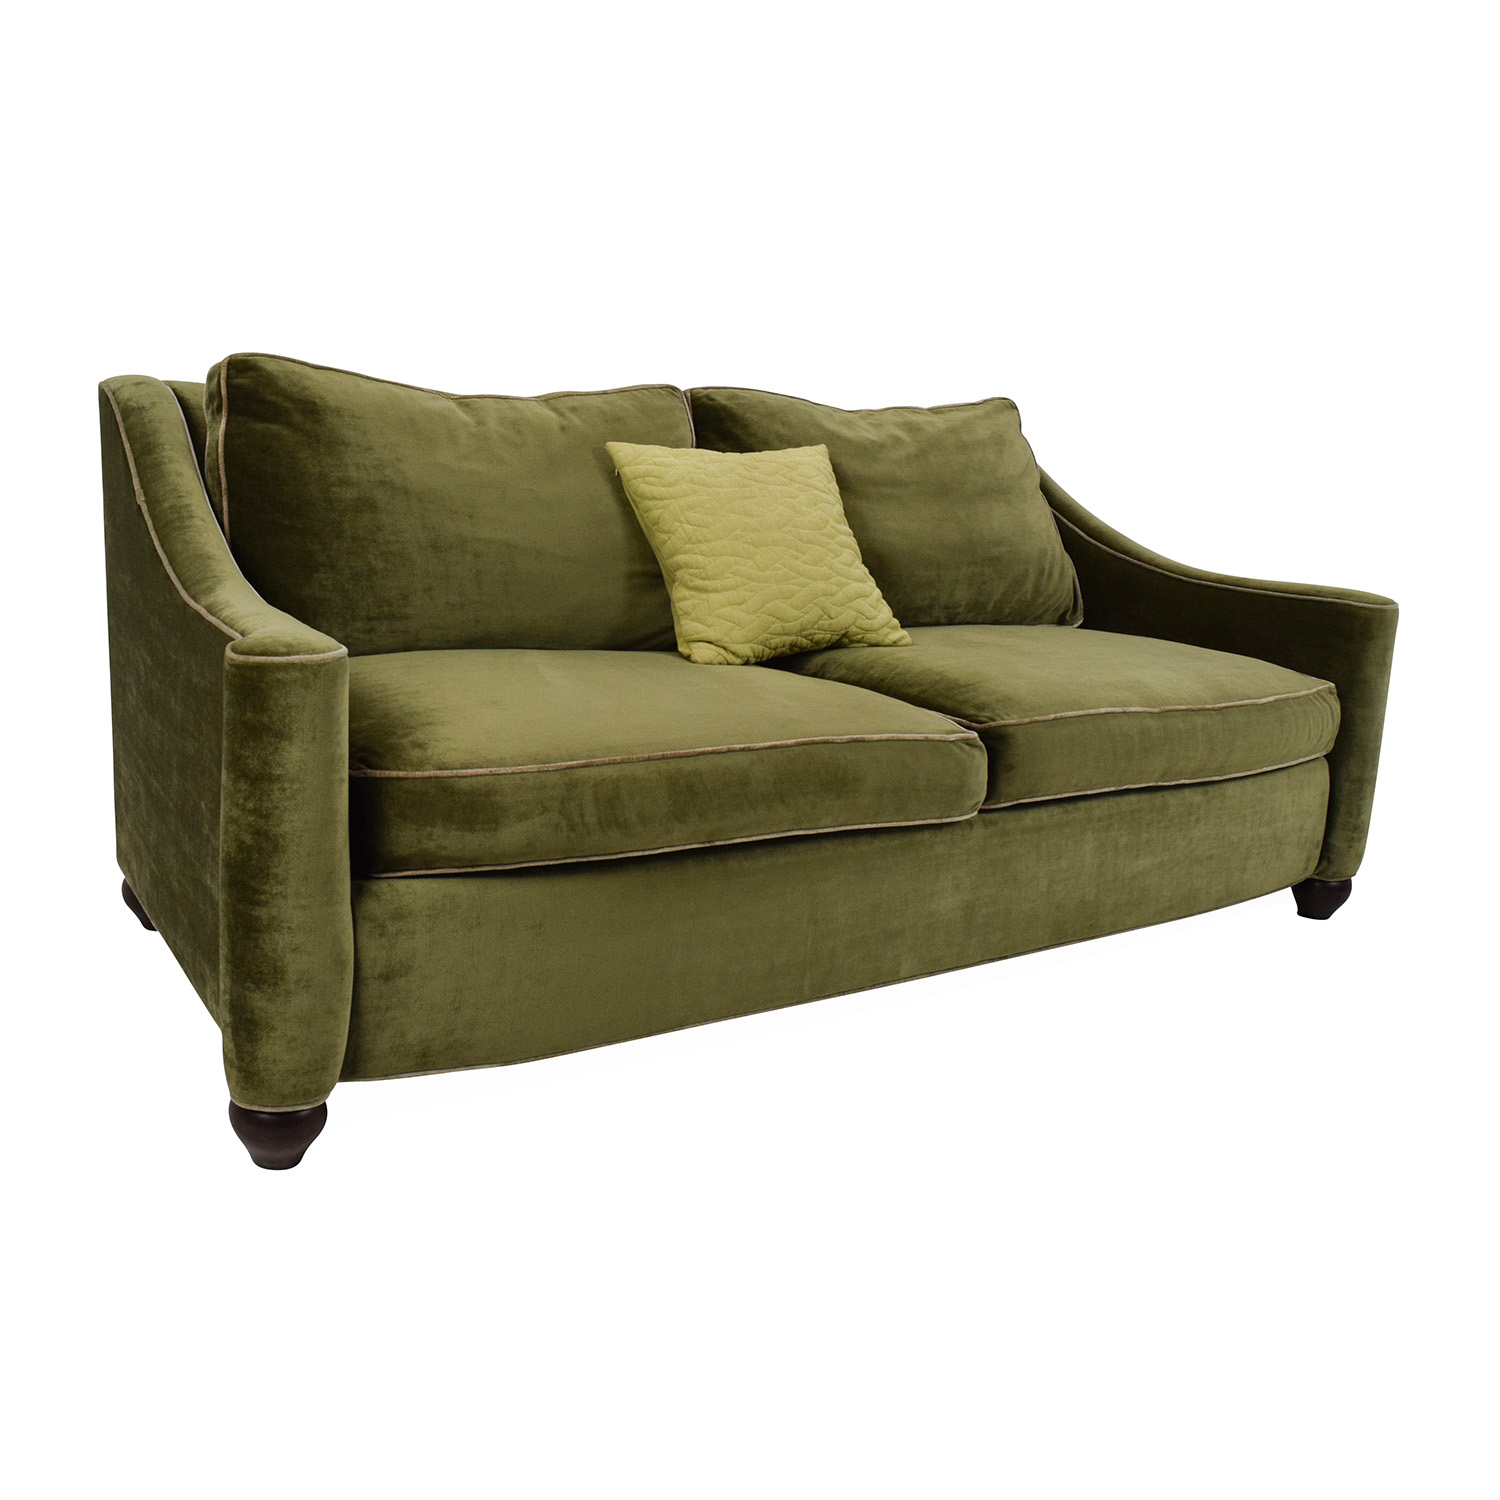 Bargain Corner Sofa Images Beige Rooms